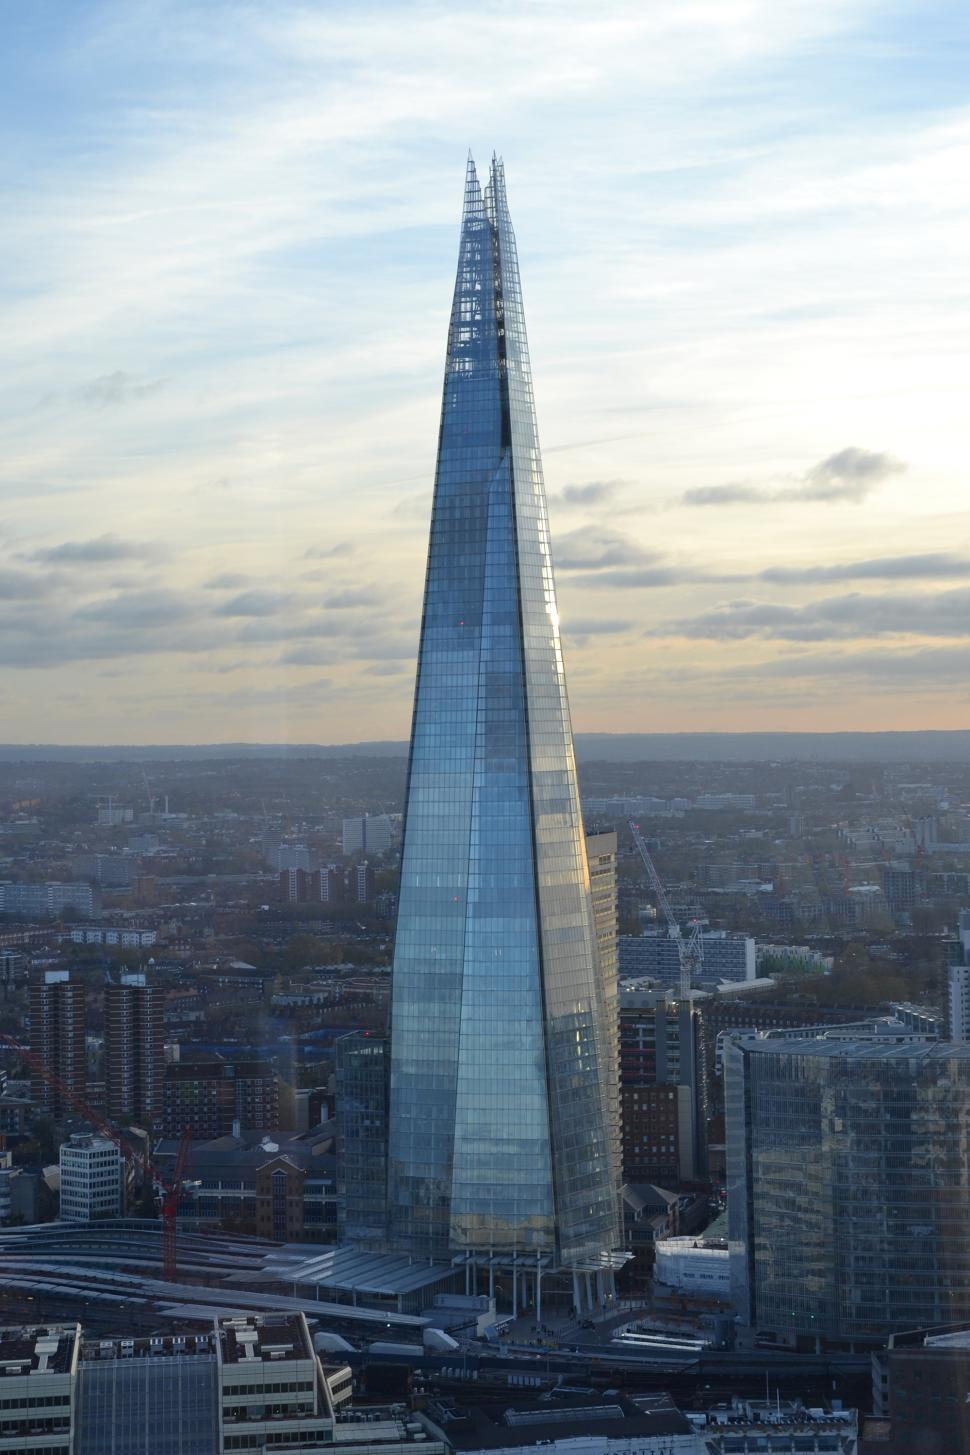 Download Free Stock Photo of The Shard